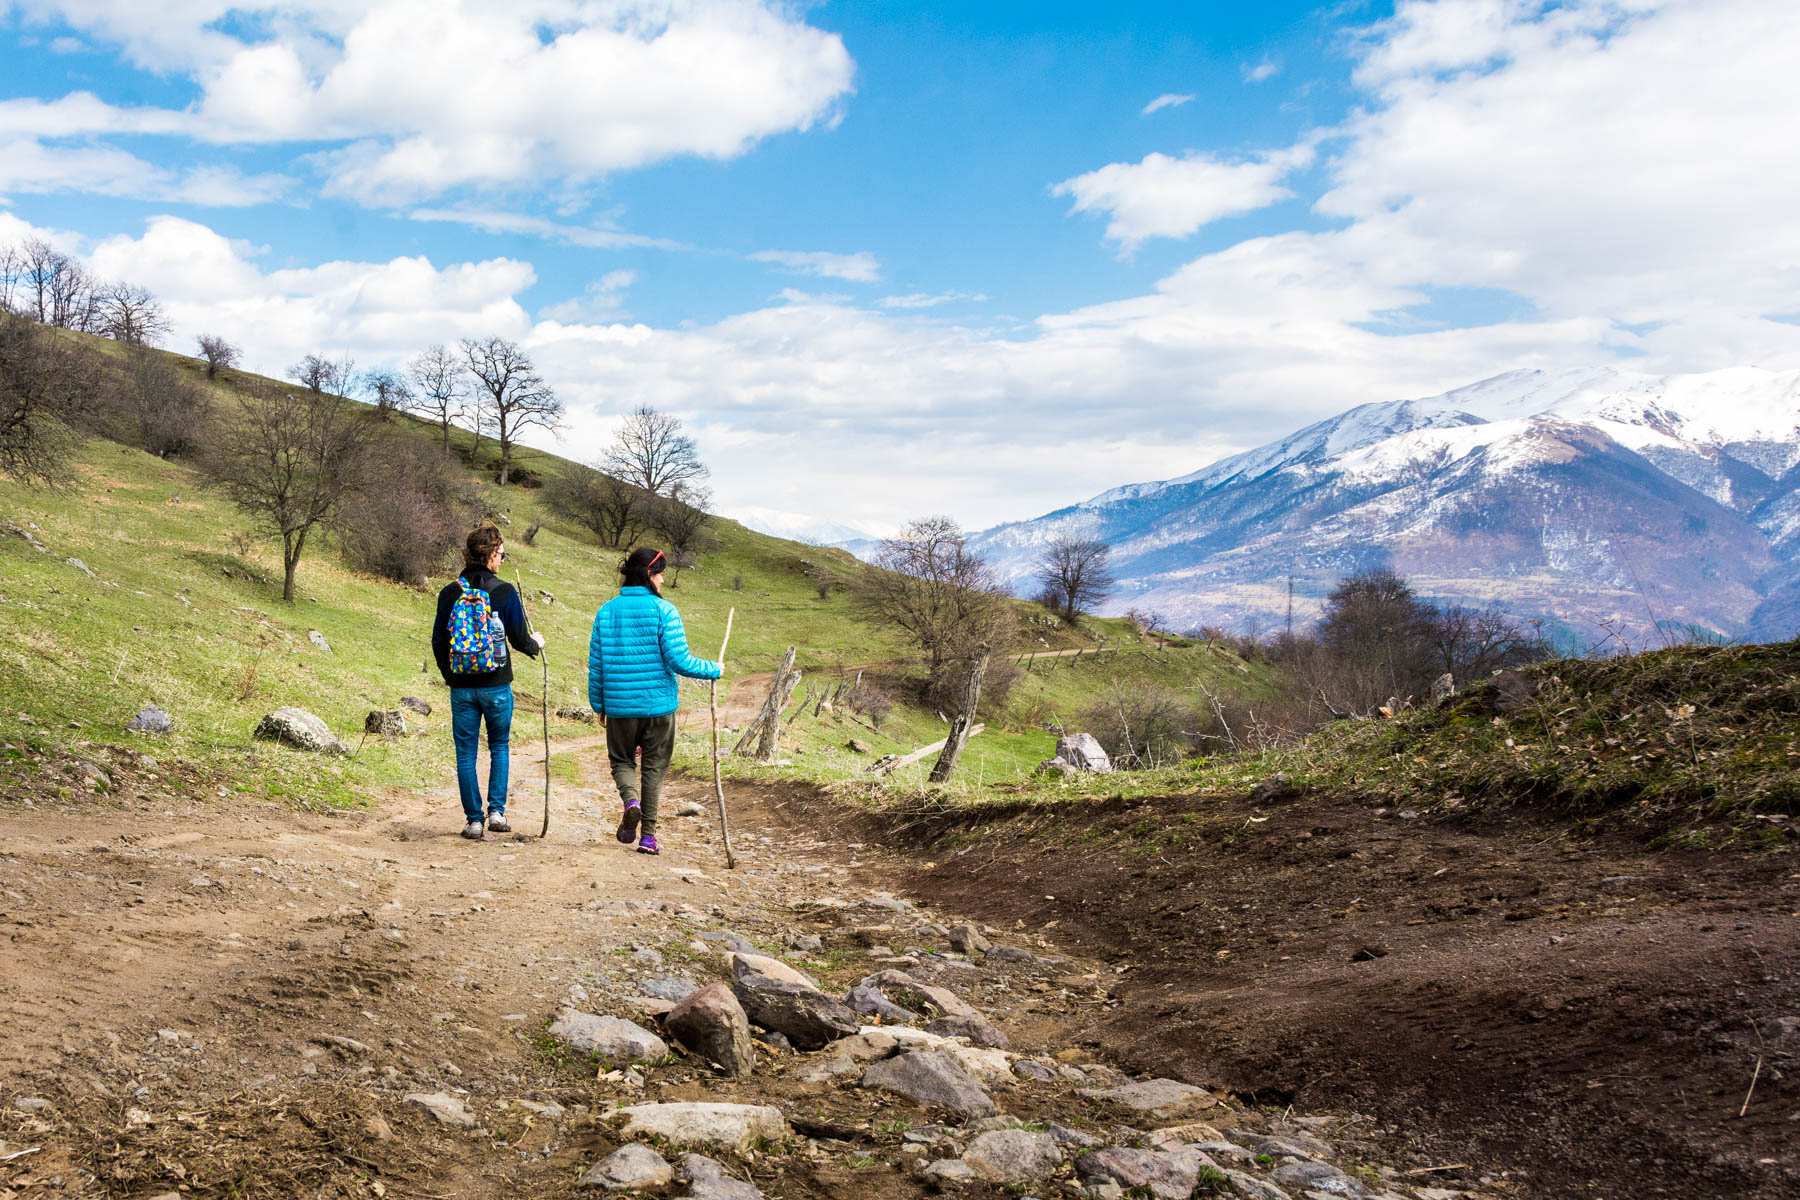 How much does one year of travel in Asia cost? - Getting lost while hiking in Dilijan, Armenia - Lost With Purpose